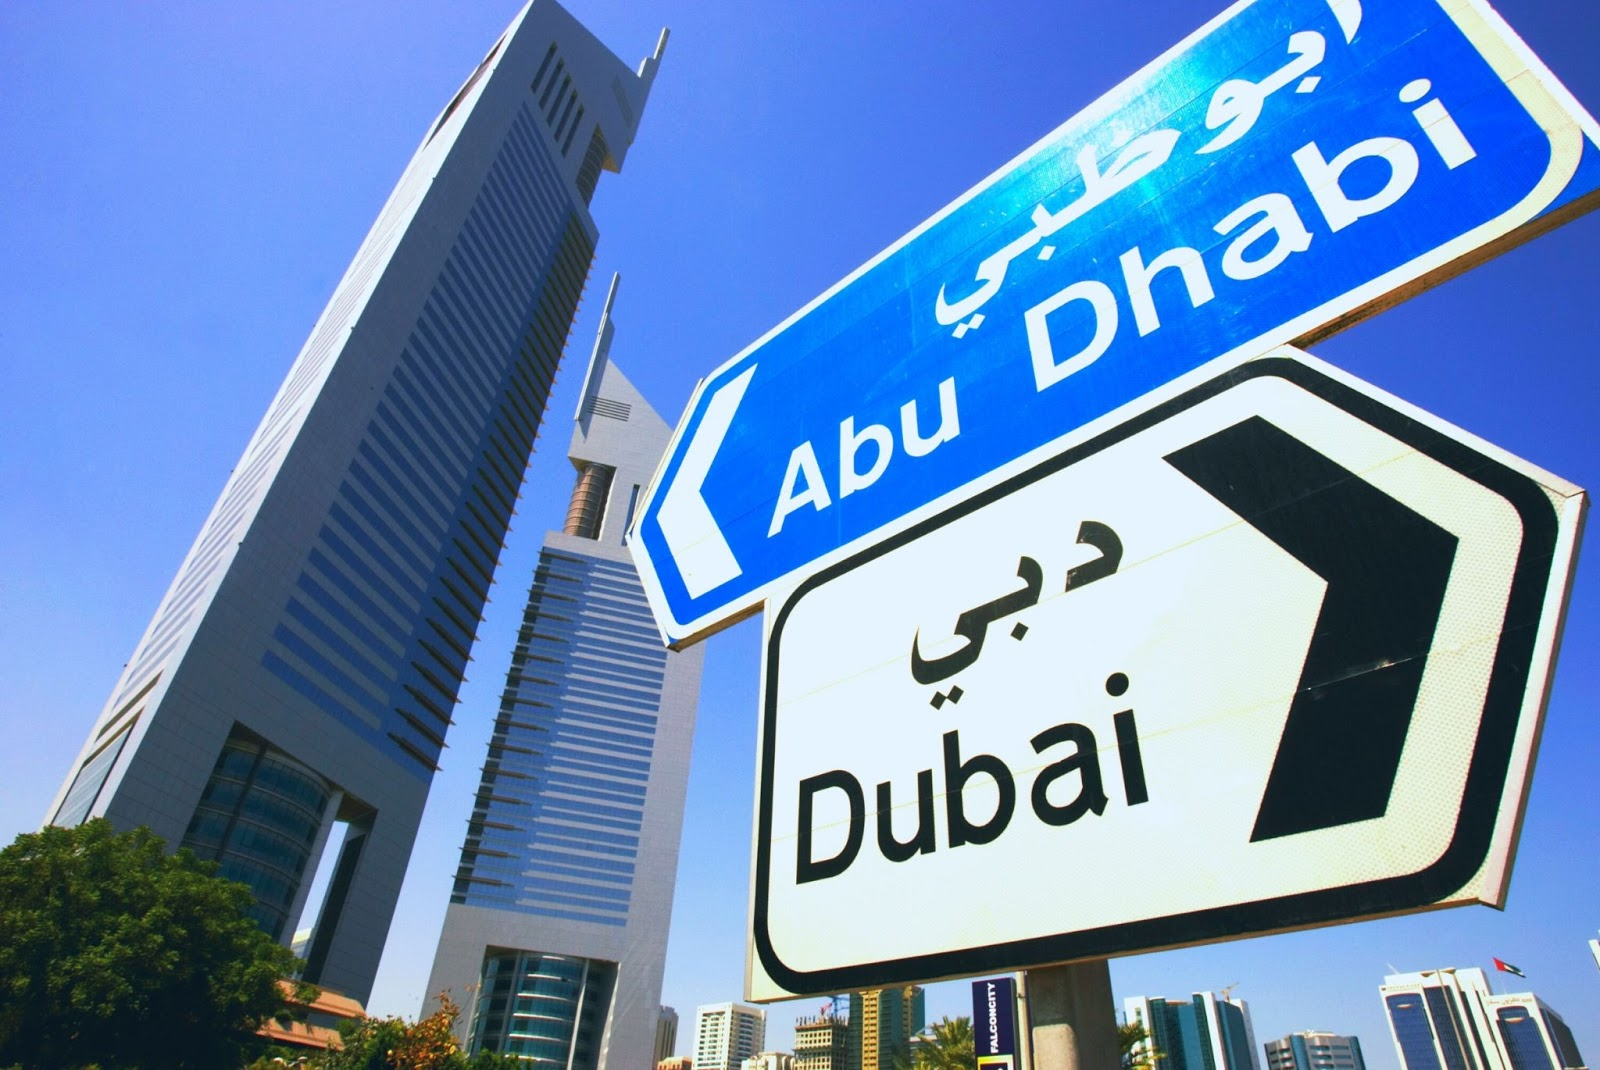 Dubai is a city and an Emirate, not a country